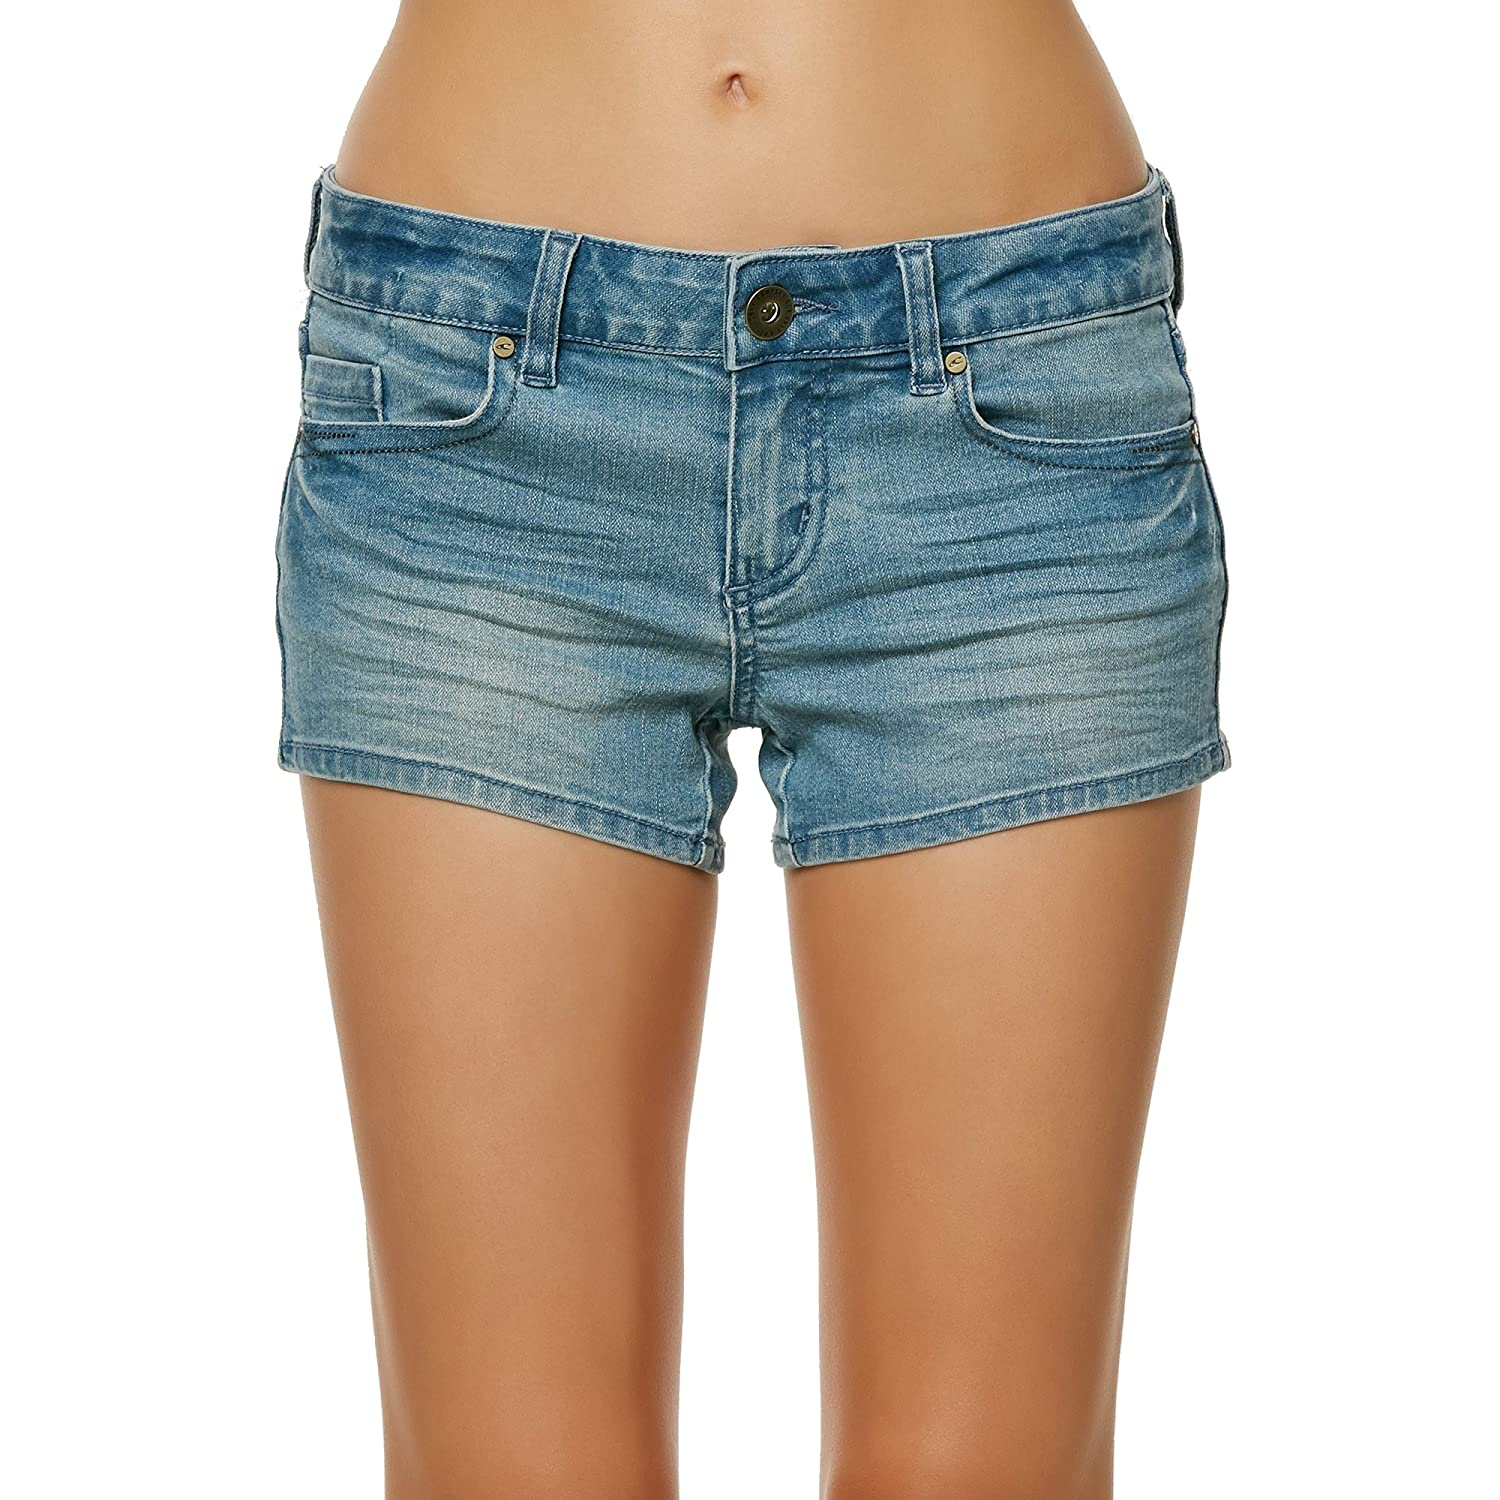 O'Neill Women's Kole Denim Short, O'Neill SP8408009